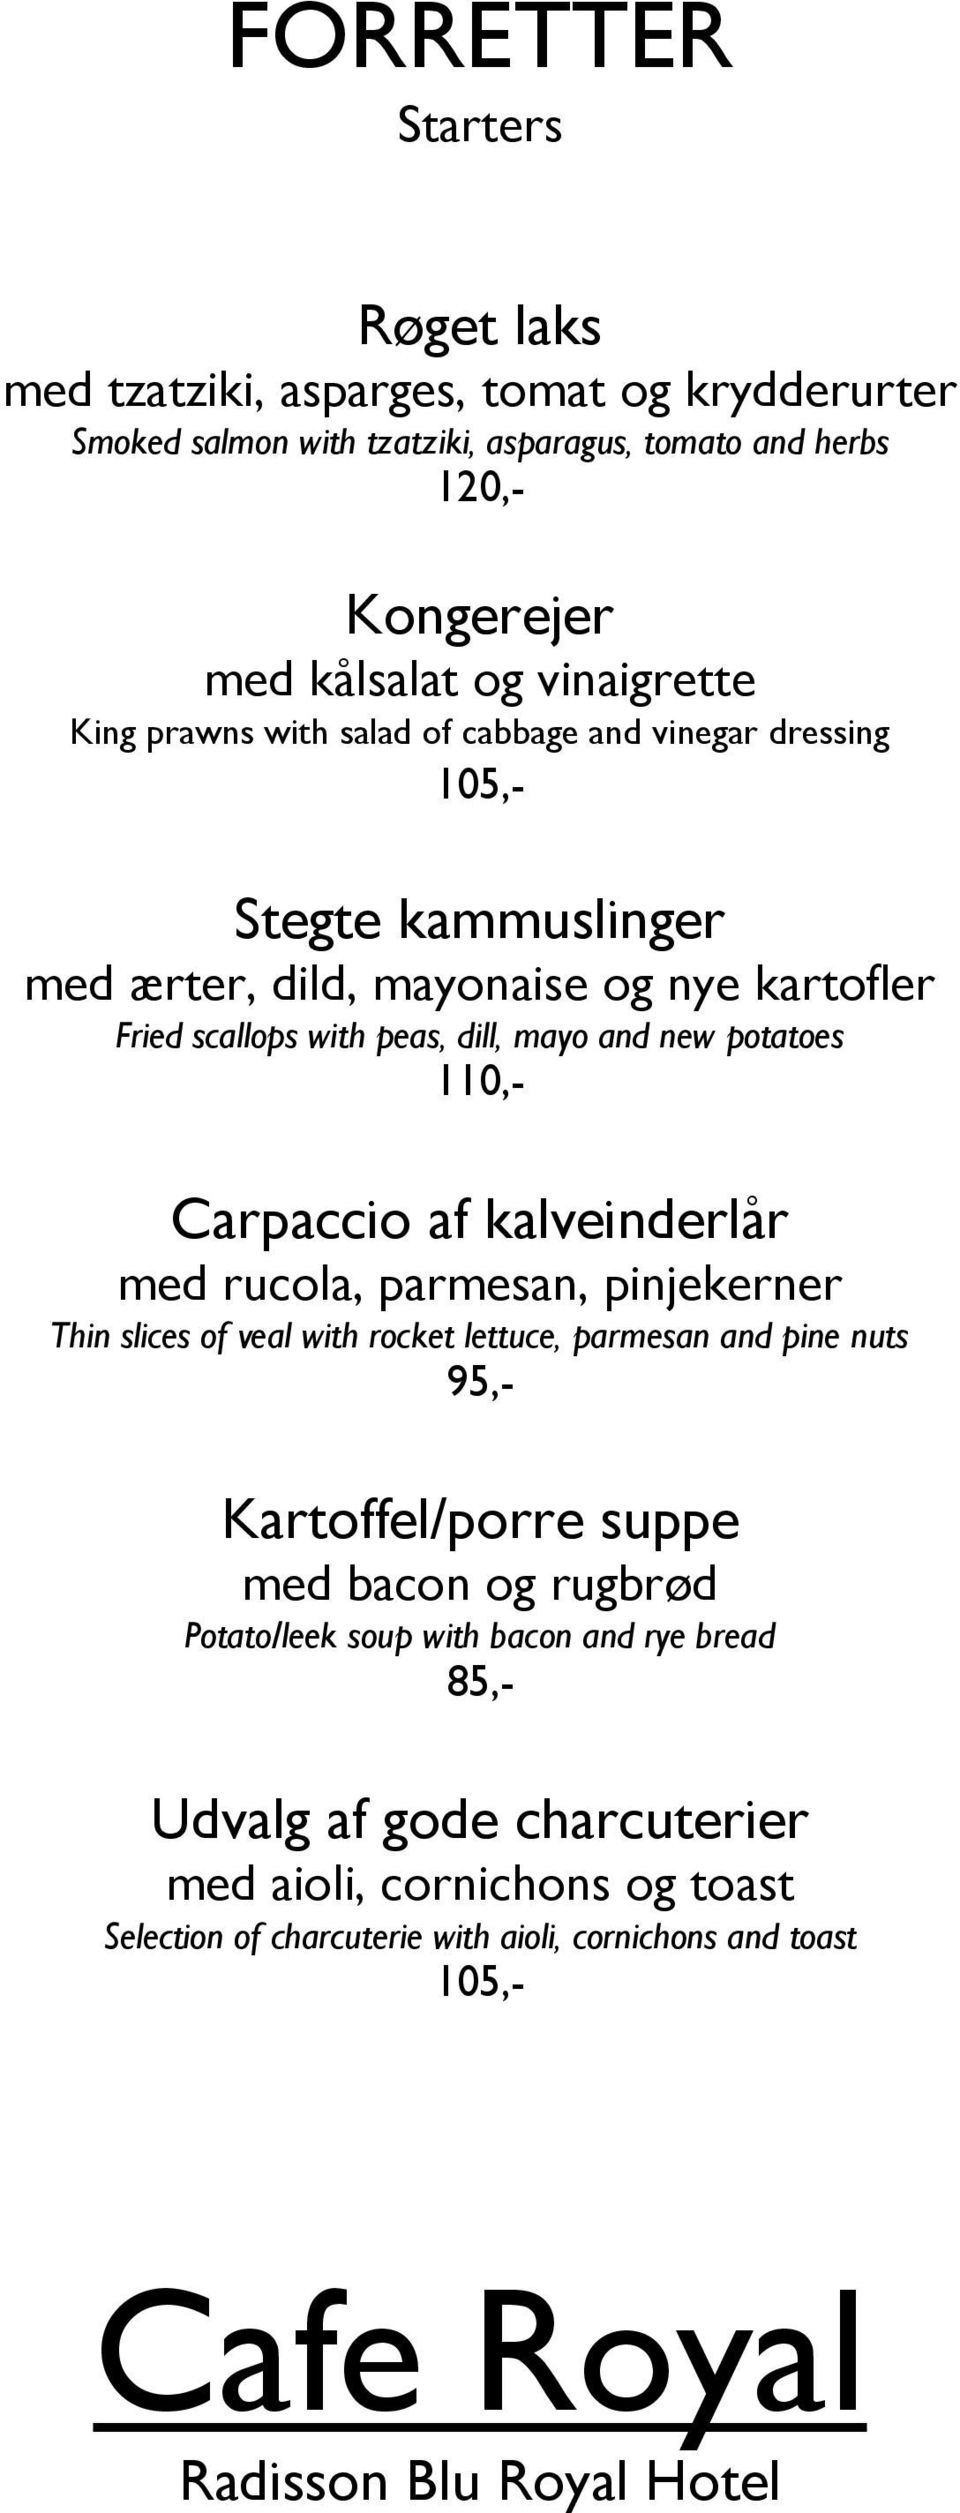 and new potatoes 110,- Carpaccio af kalveinderlår med rucola, parmesan, pinjekerner Thin slices of veal with rocket lettuce, parmesan and pine nuts 95,- Kartoffel/porre suppe